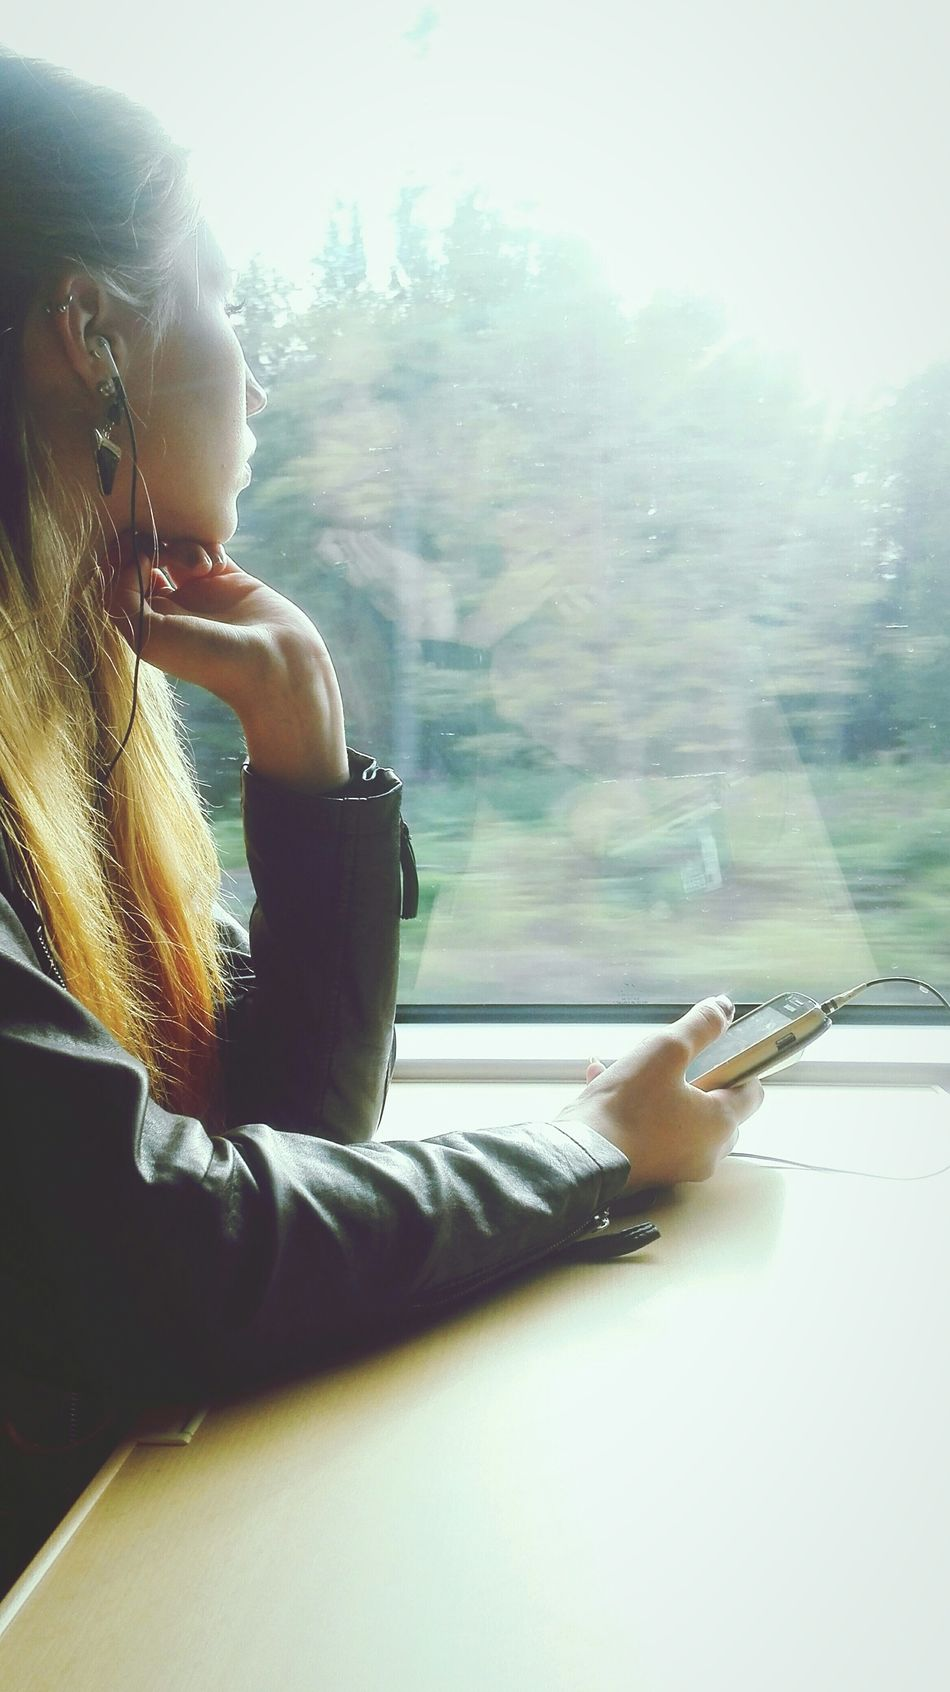 Feel free to do whatever you like. Music Travelling Train Girl Ilovemysister Capturing Freedom Wondering Stare Window Young Adult Young Women Sitting Alone Inside PhonePhotography